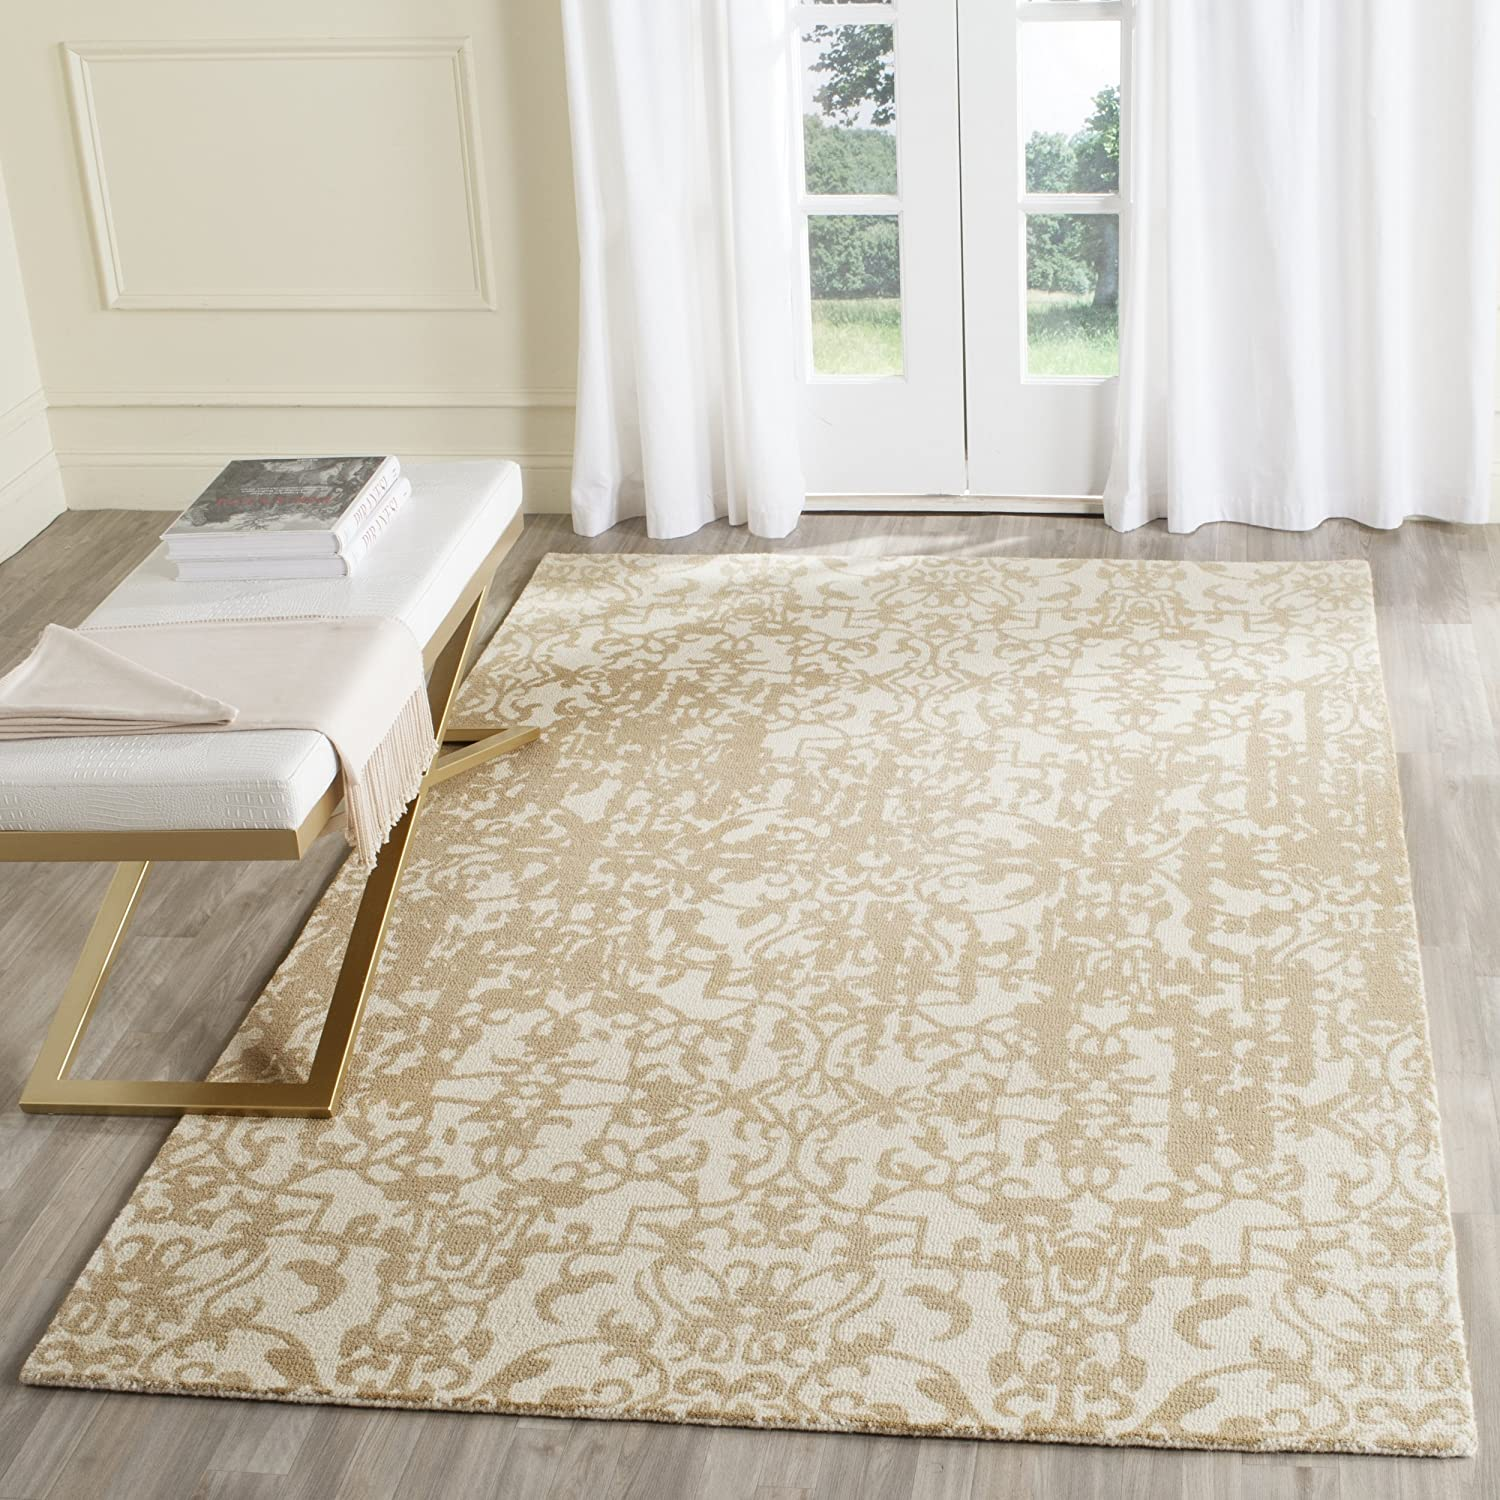 Amazon Com Safavieh Restoration Vintage Collection Rvt101b Handmade Distressed Wool Area Rug 6 X 6 Square Ivory Sand Furniture Decor